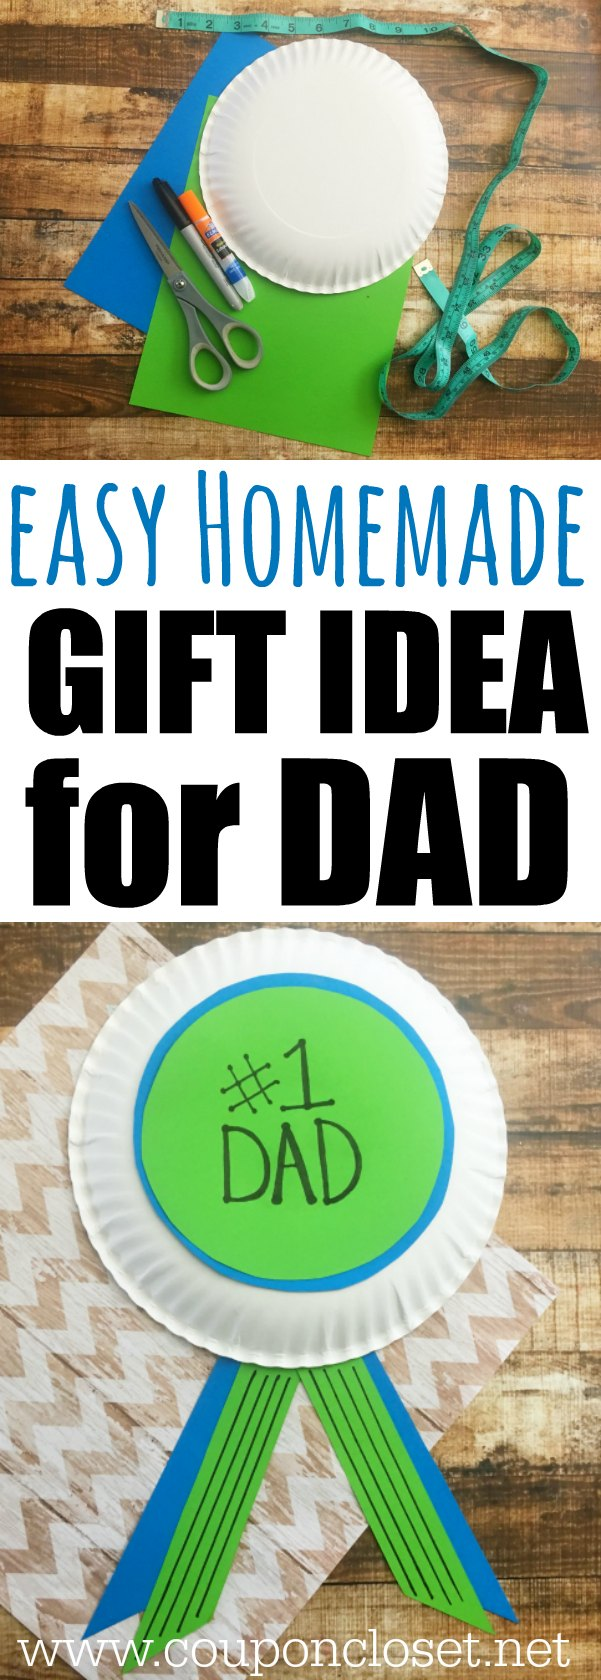 easy homemade fathers day gift idea that the kids can make